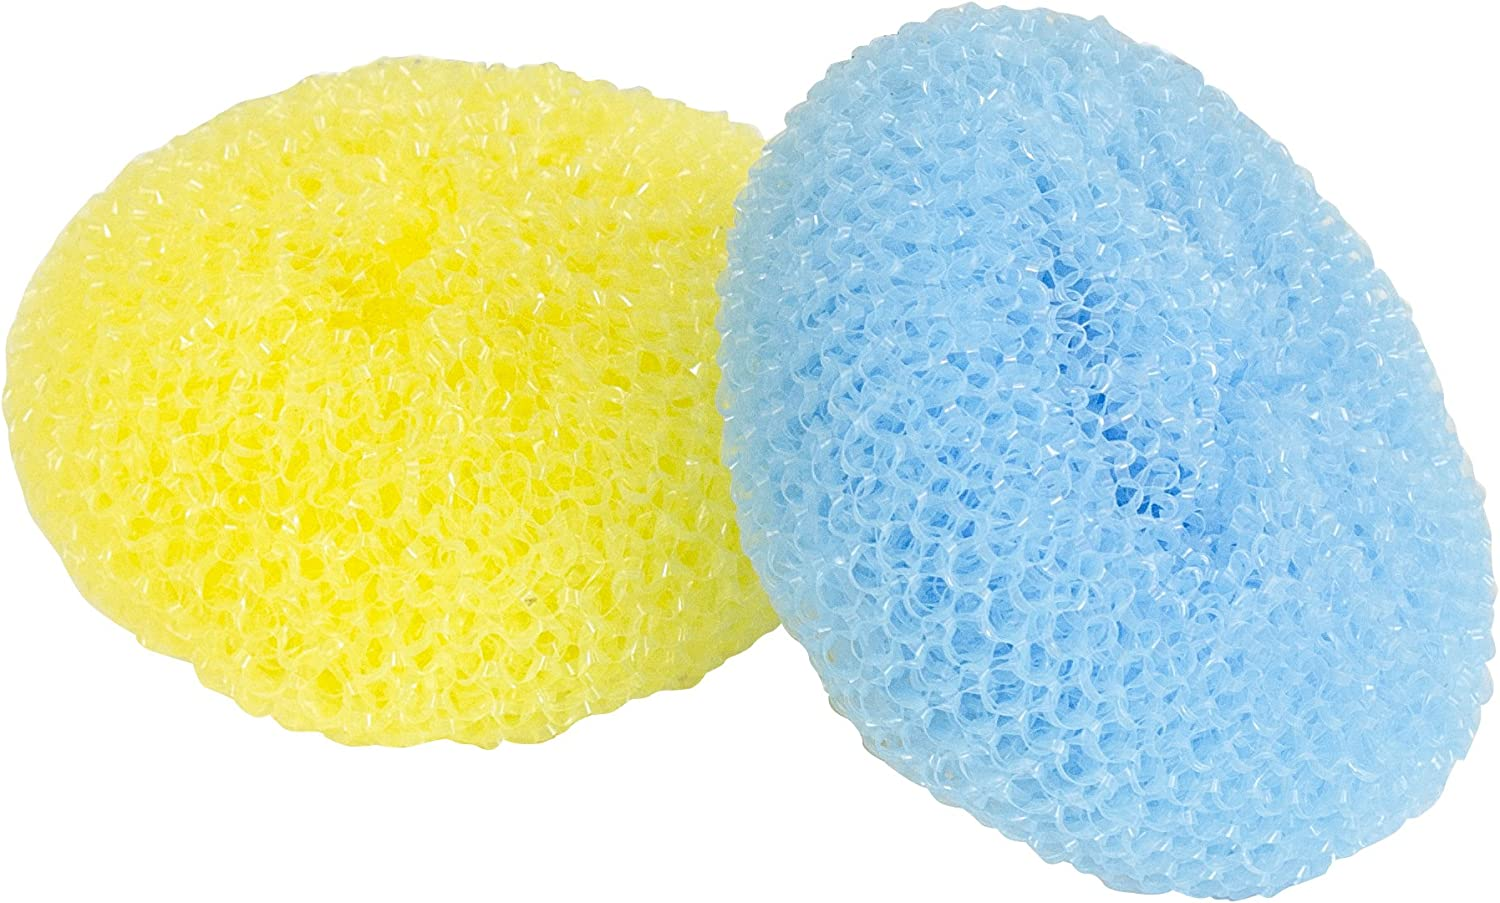 Quickie Plastic Mesh Scourers Safety and Beauty products trust 2-Pack Pads Cleaning fo Scouring